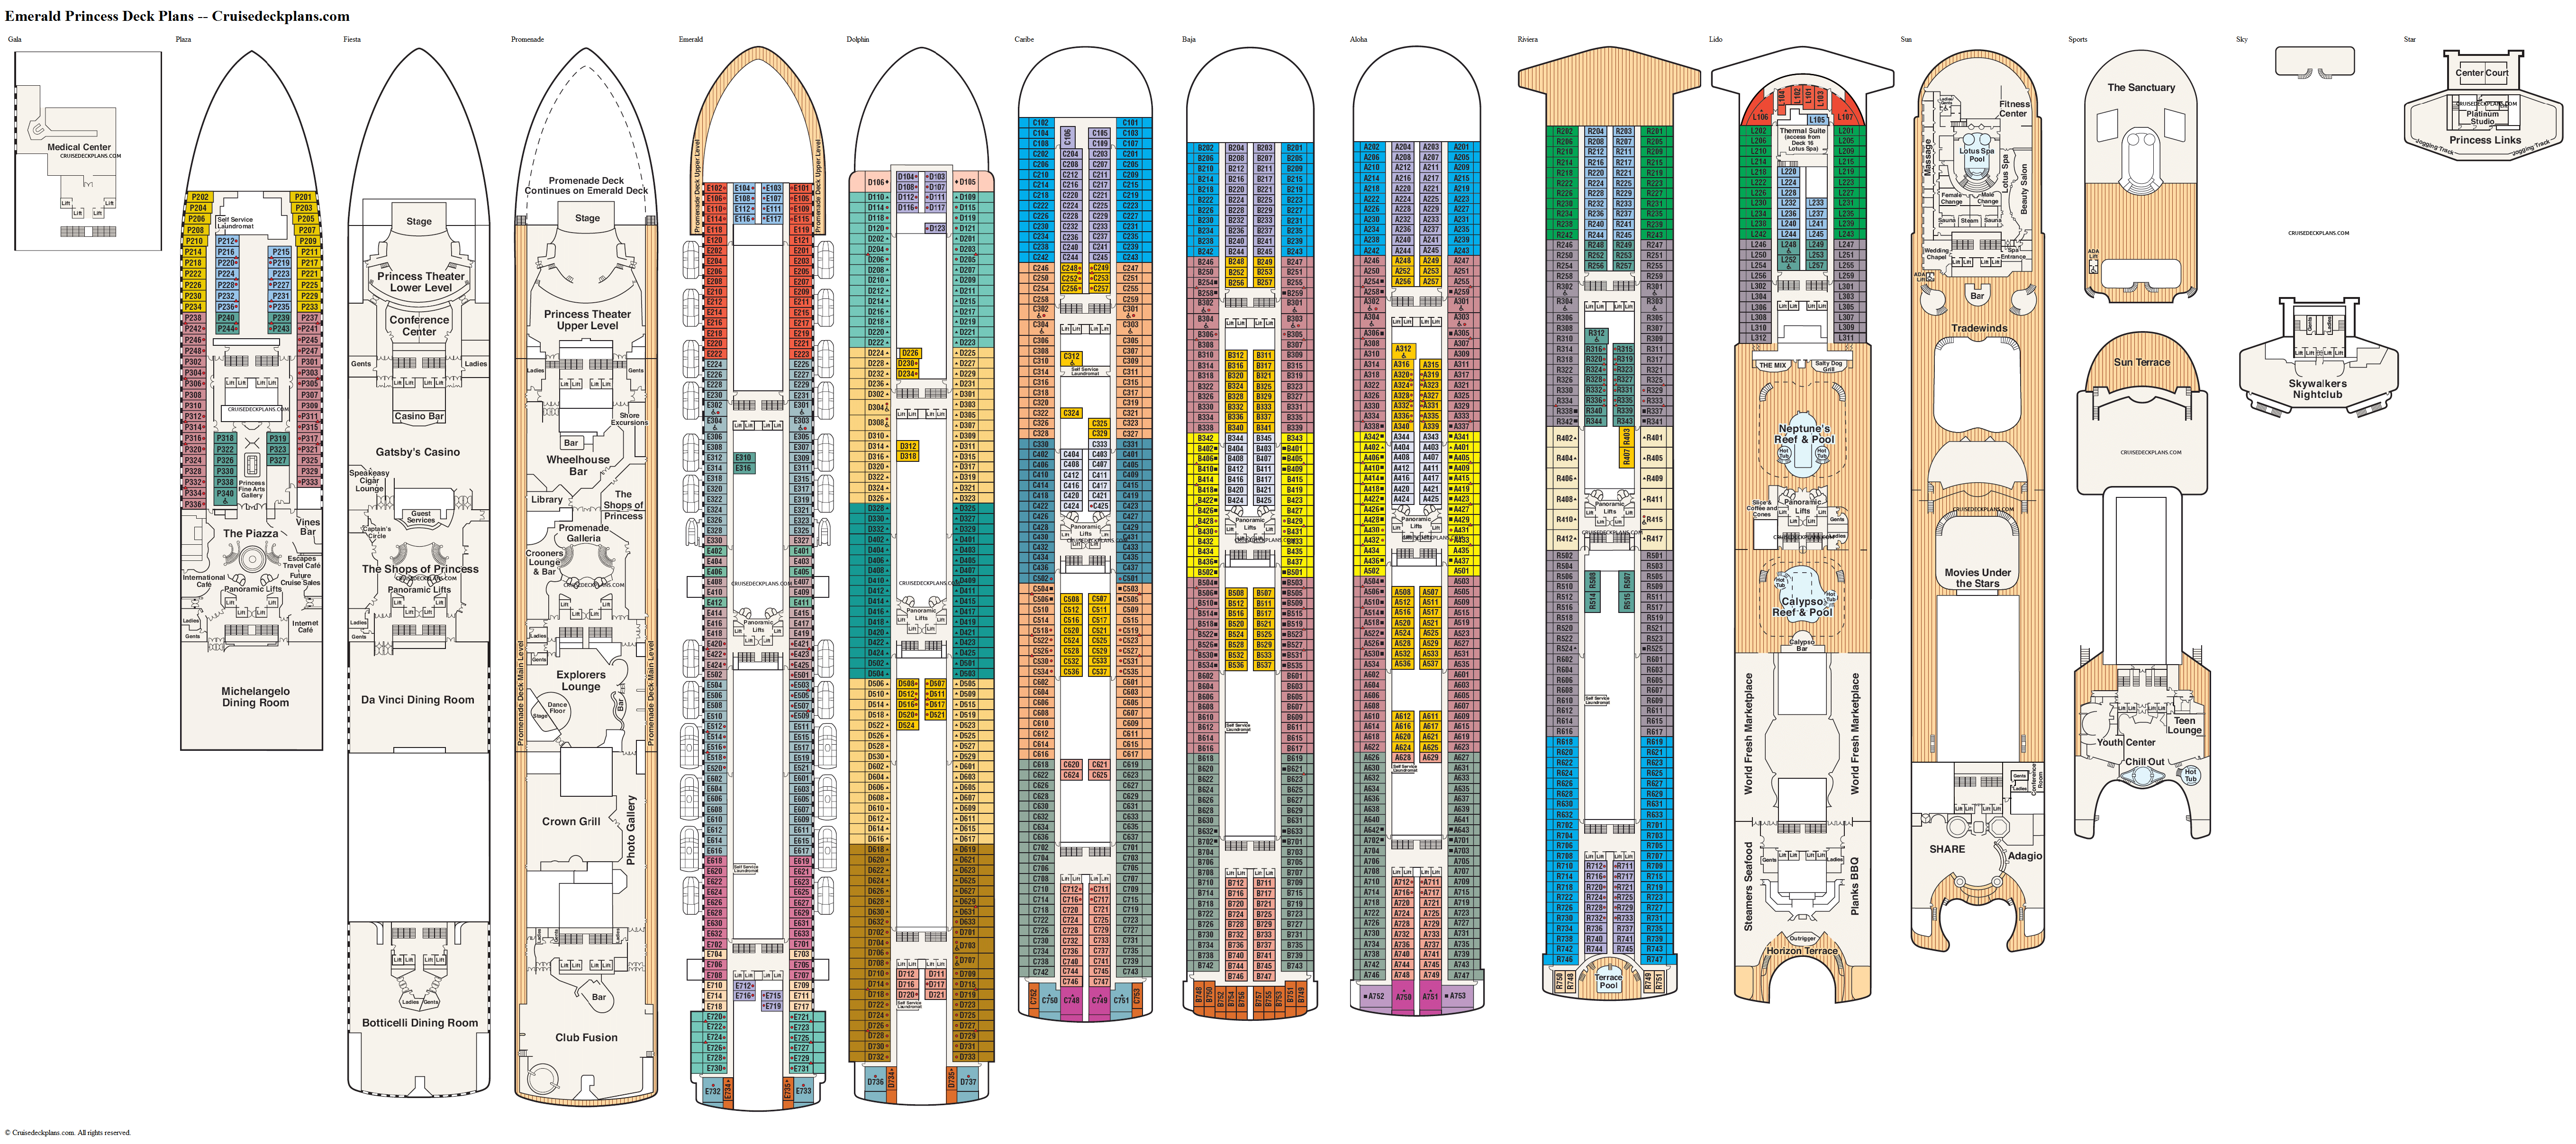 Emerald Princess deck plans image